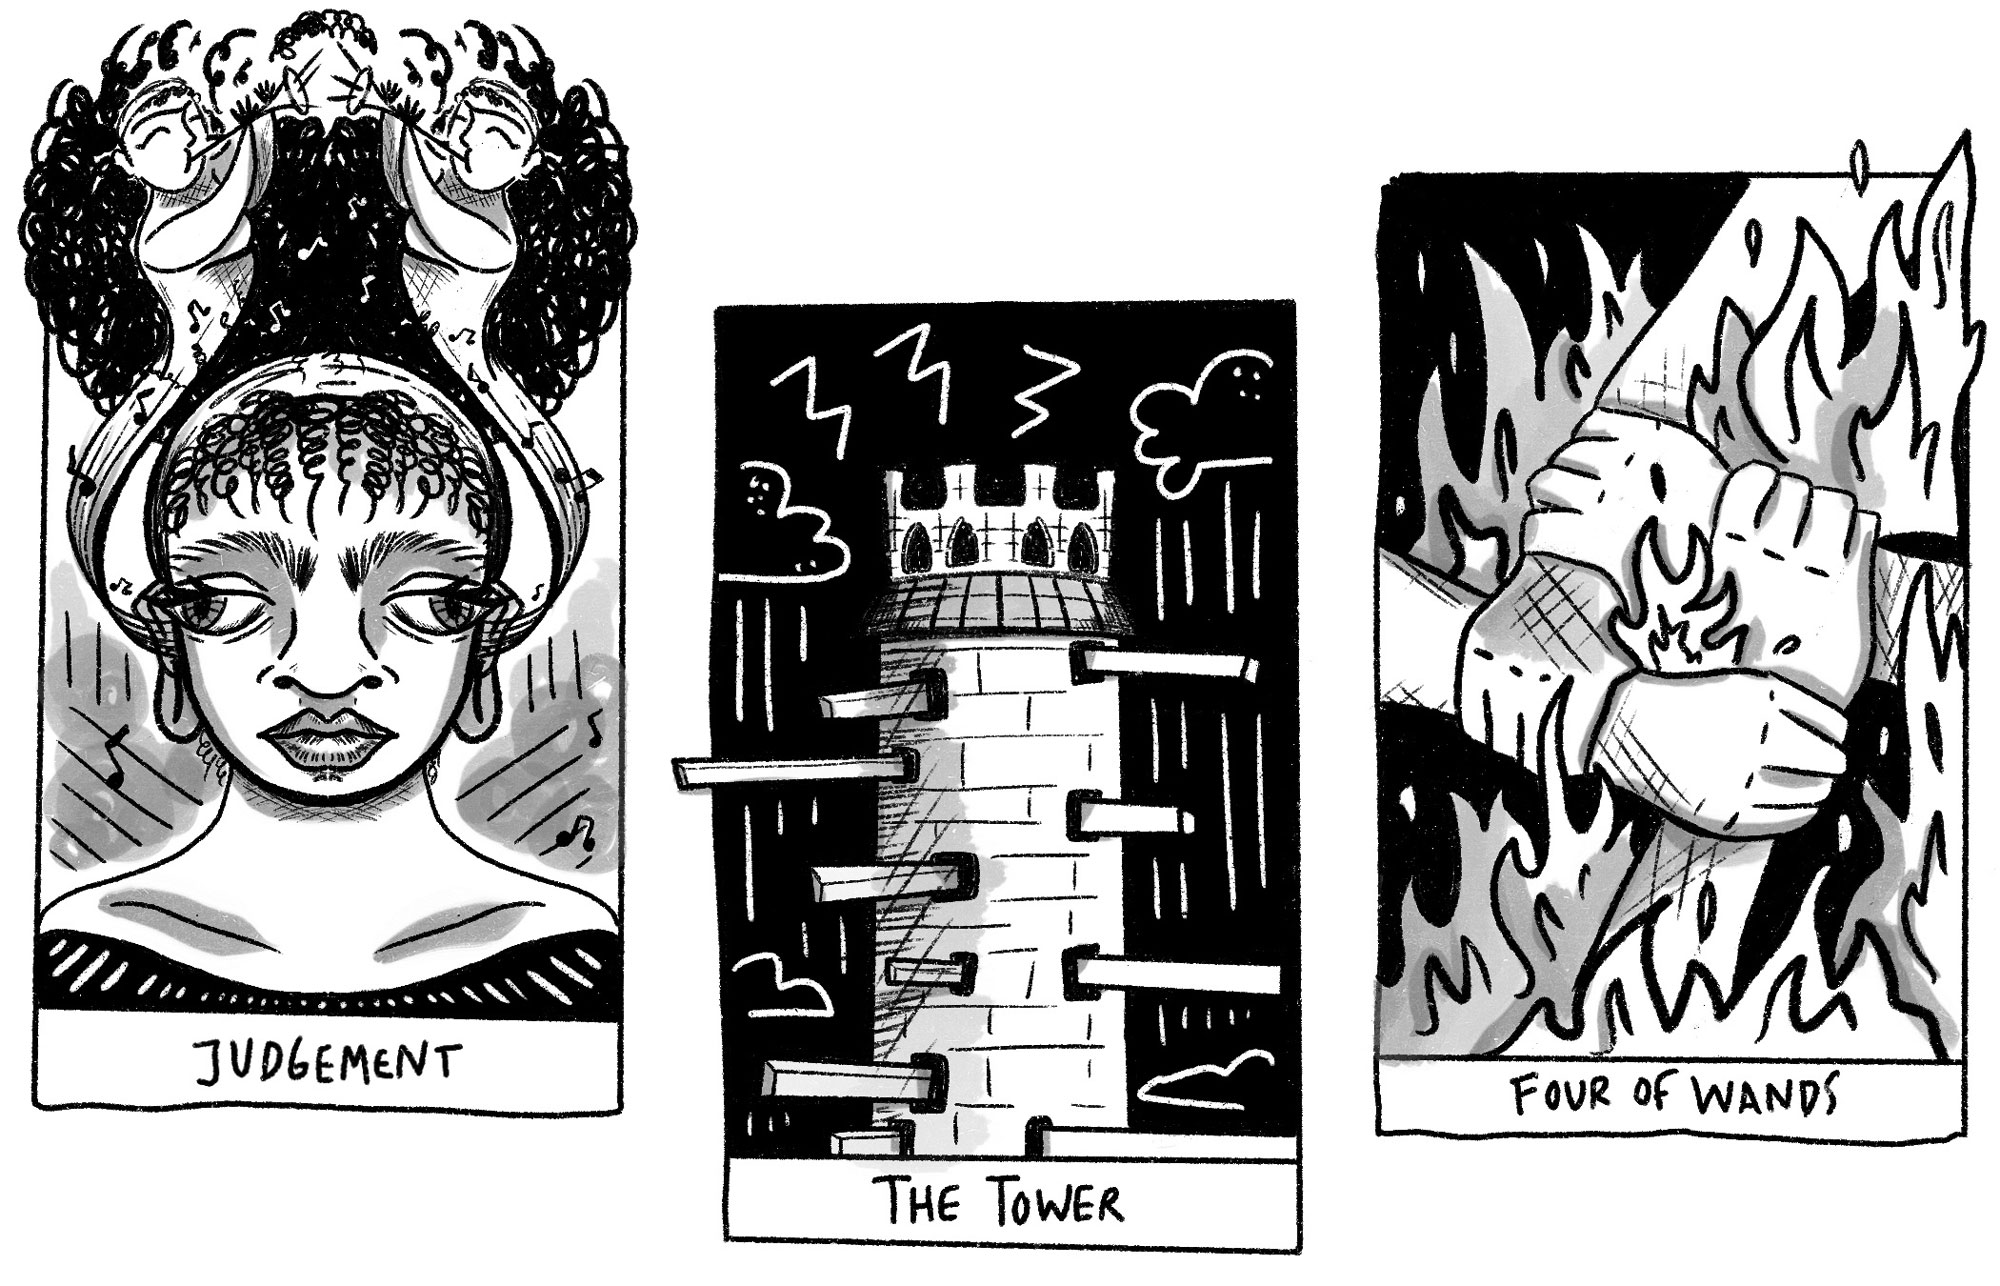 """A black and white illustration of 3 tarot cards sitting side by side. The left card depicts a person with an afro tied back, and 2 trumpet players on either side. The trumpet players are facing each other on either side of the afro, and the bottom half of their bodies turn into musical notes that come from the person's ears. The bottom reads """"Judgement."""" The middle card depicts a toward with planks protruding down the sides. The background is black, and there are storm clouds and lightning bolts. The bottom reads """"The Tower."""" The right card depicts 4 hands all grabbing each others' wrists in order to form a square. There are flames surrounding the arms and in between the hands. The bottom reads """"Four of Wands."""" Illustration by Karla Rosas."""